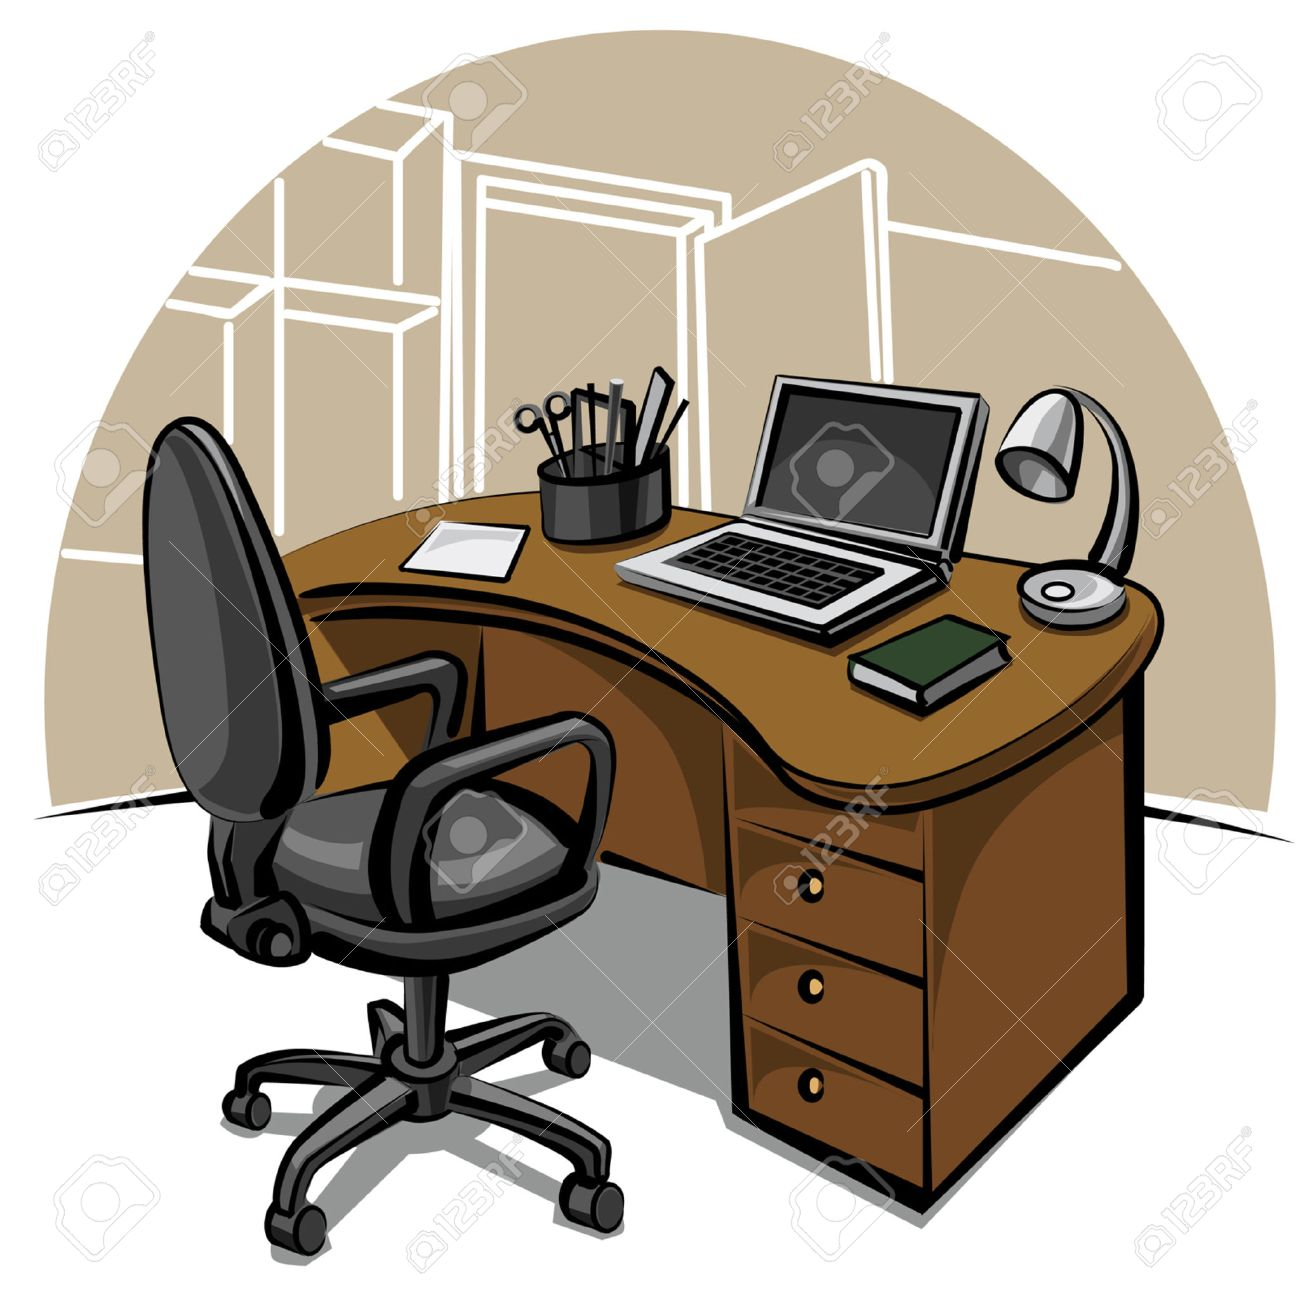 office work place - 8949323